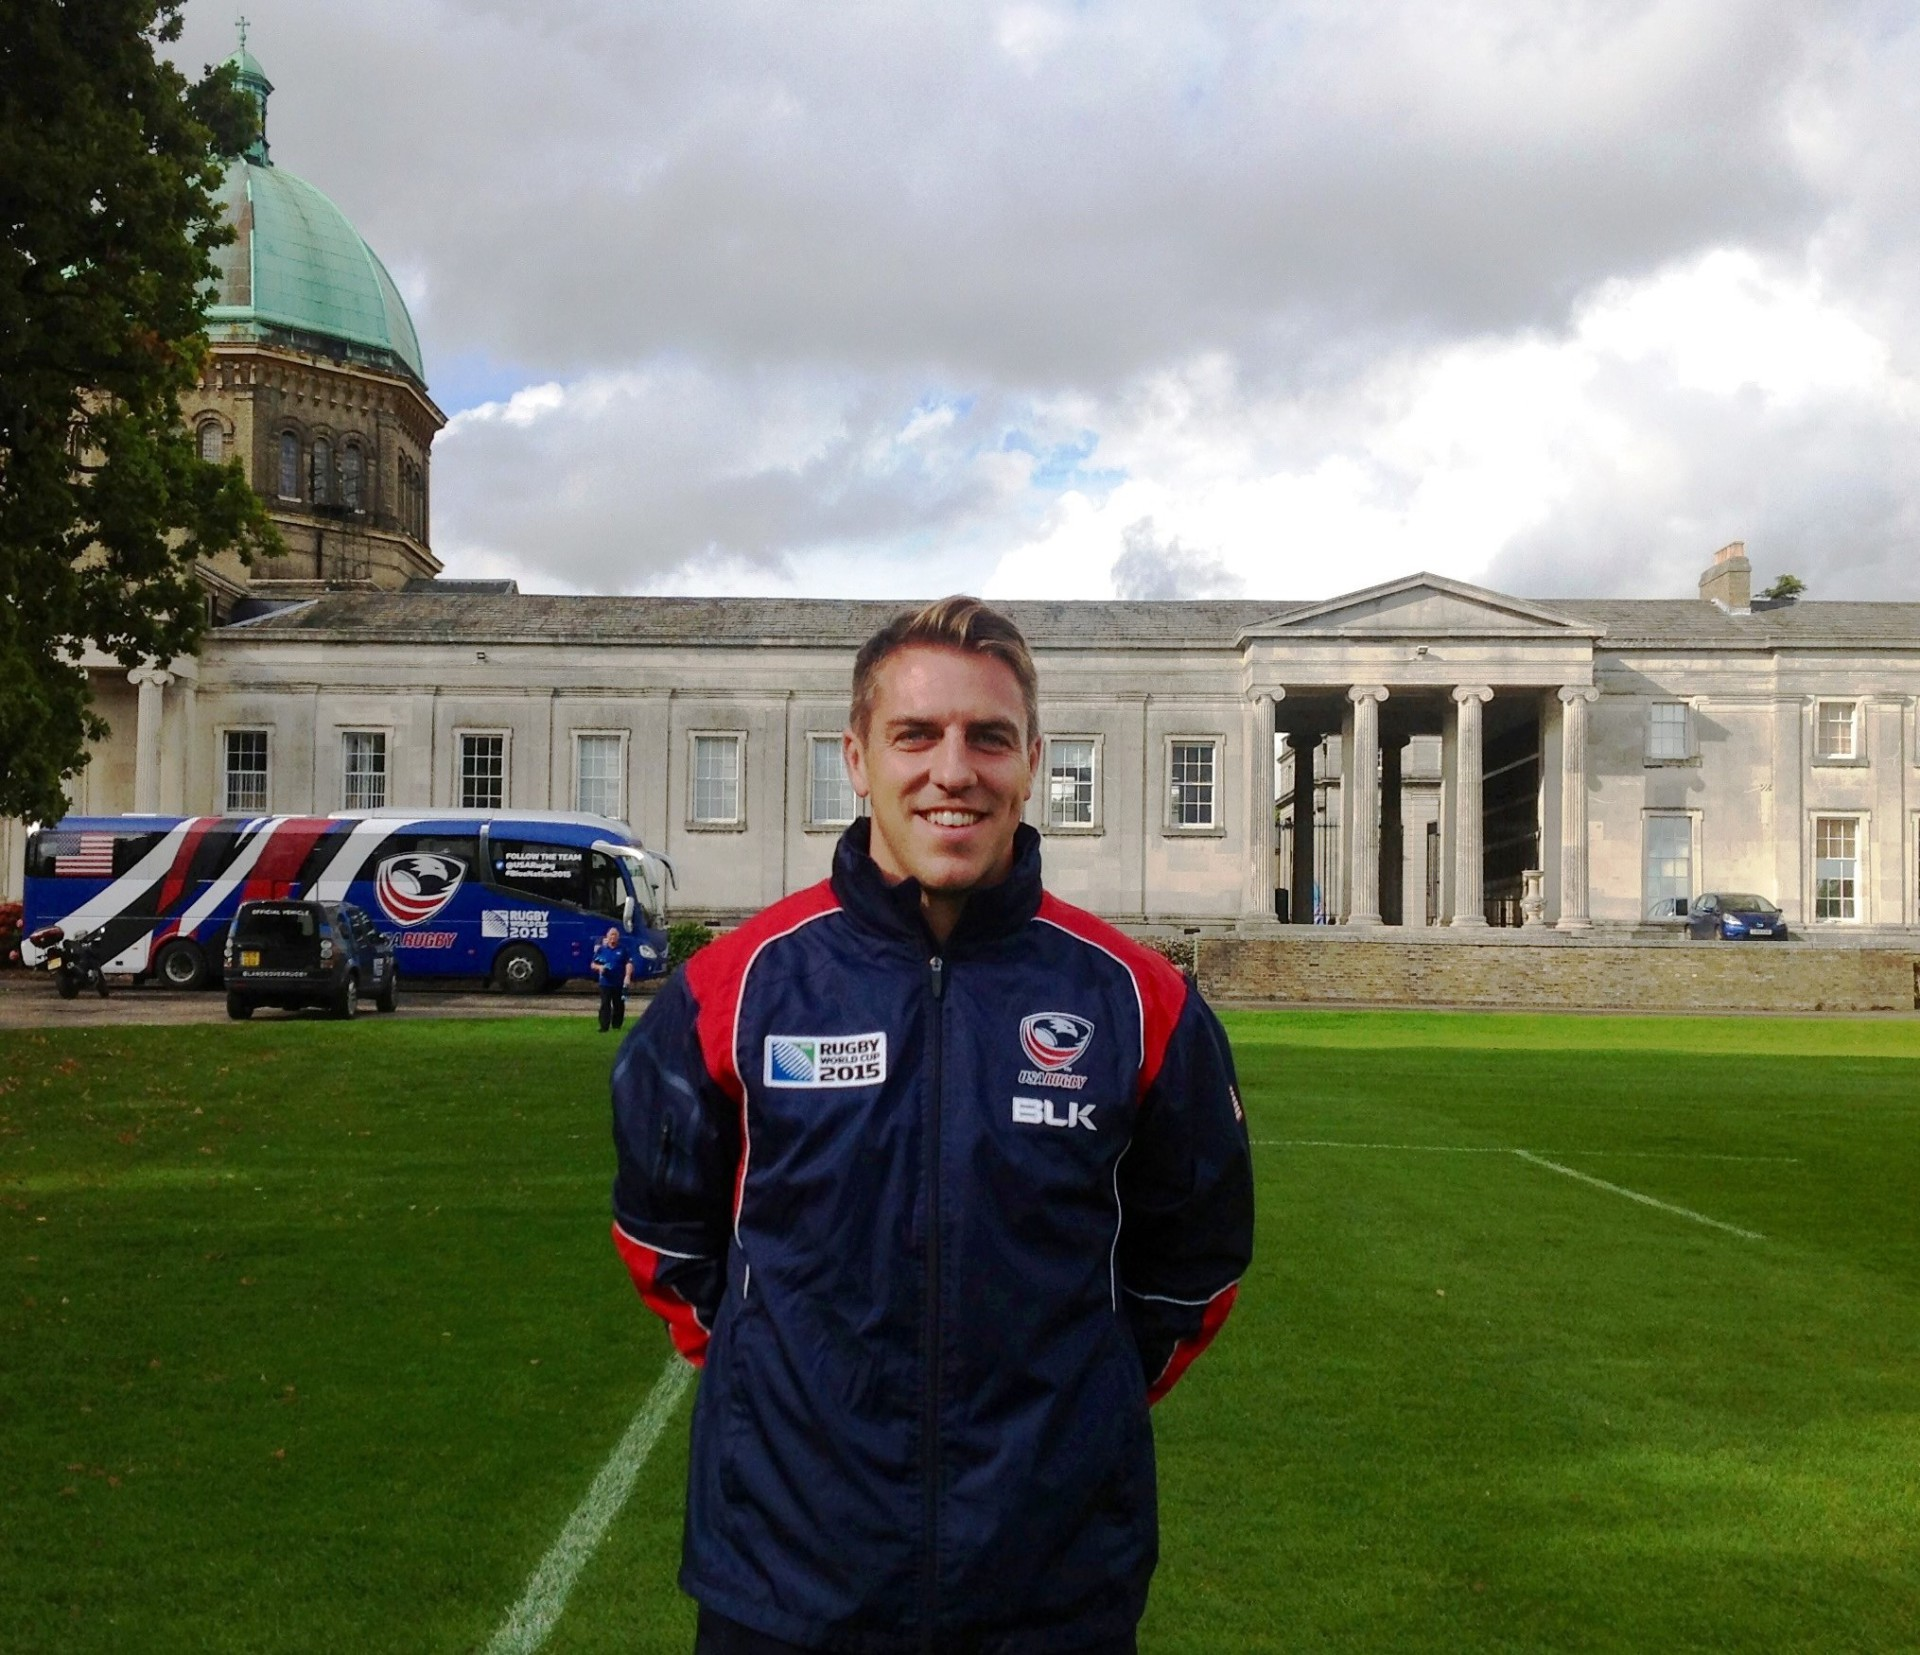 An interview with Eagles' Captain & Saracens' Winger, Chris Wyles (Tr 97)